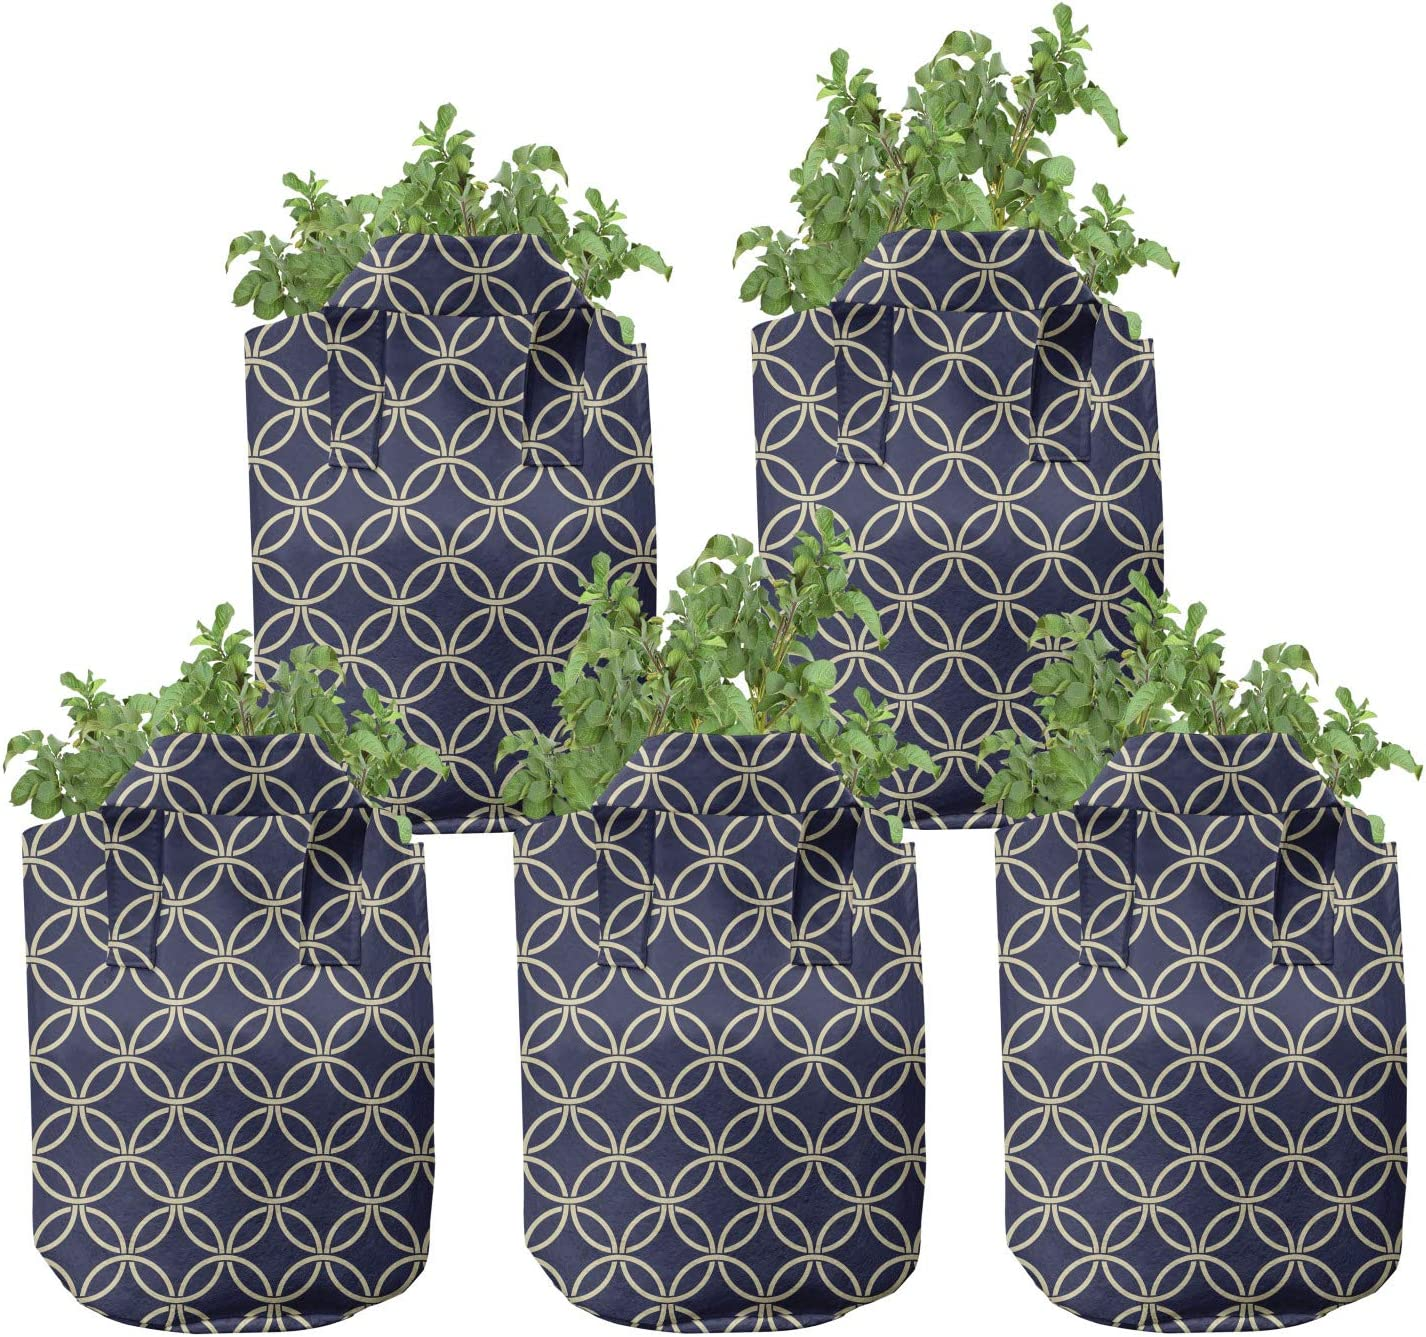 Latest item Ambesonne Nashville-Davidson Mall Navy Blue Grow Bags Hea Round 5-Pack Shapes Oriental